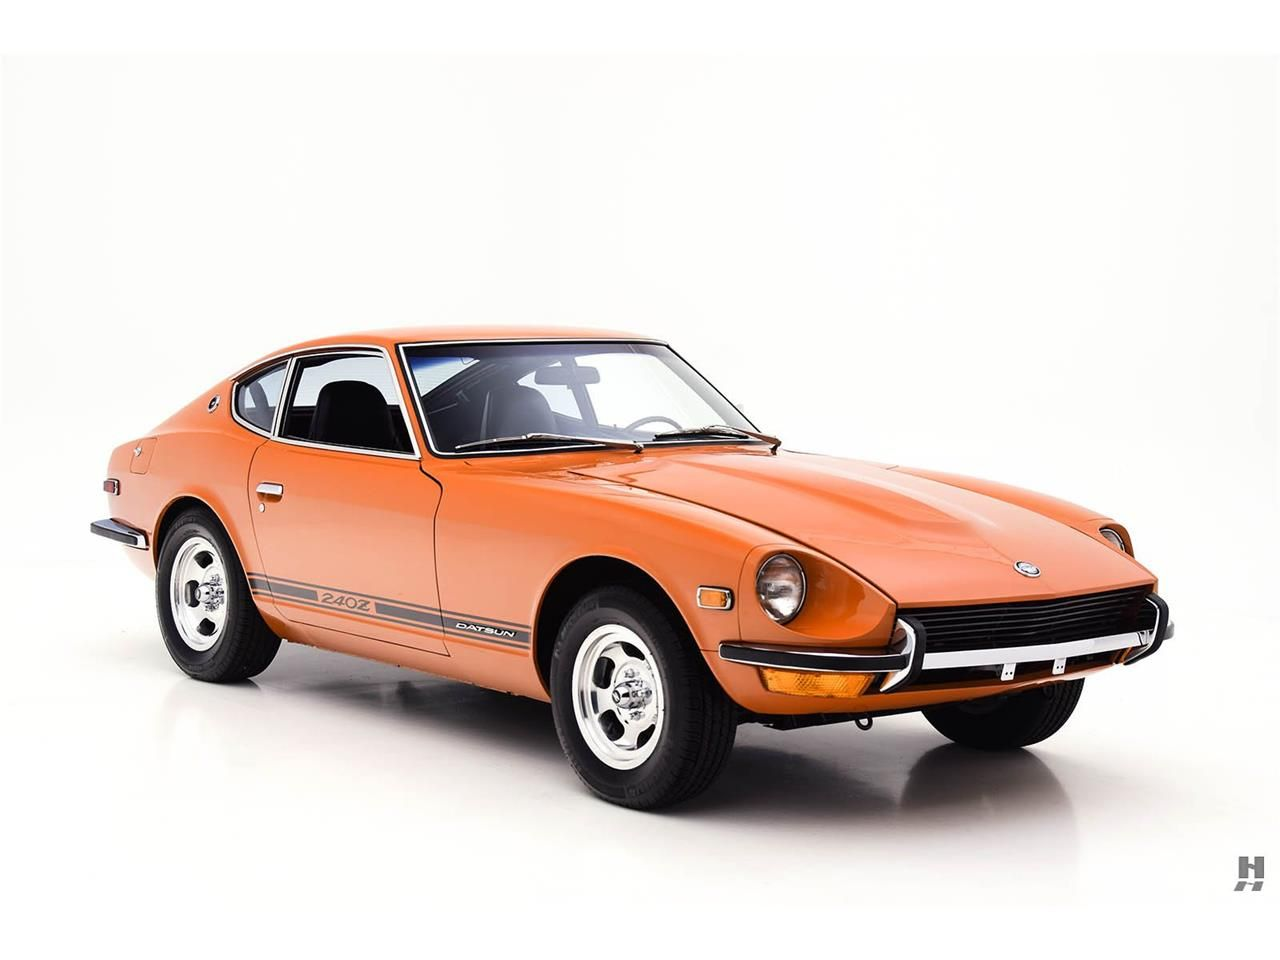 1971 Datsun 240Z in Saint Louis, Missouri | classic cars ...